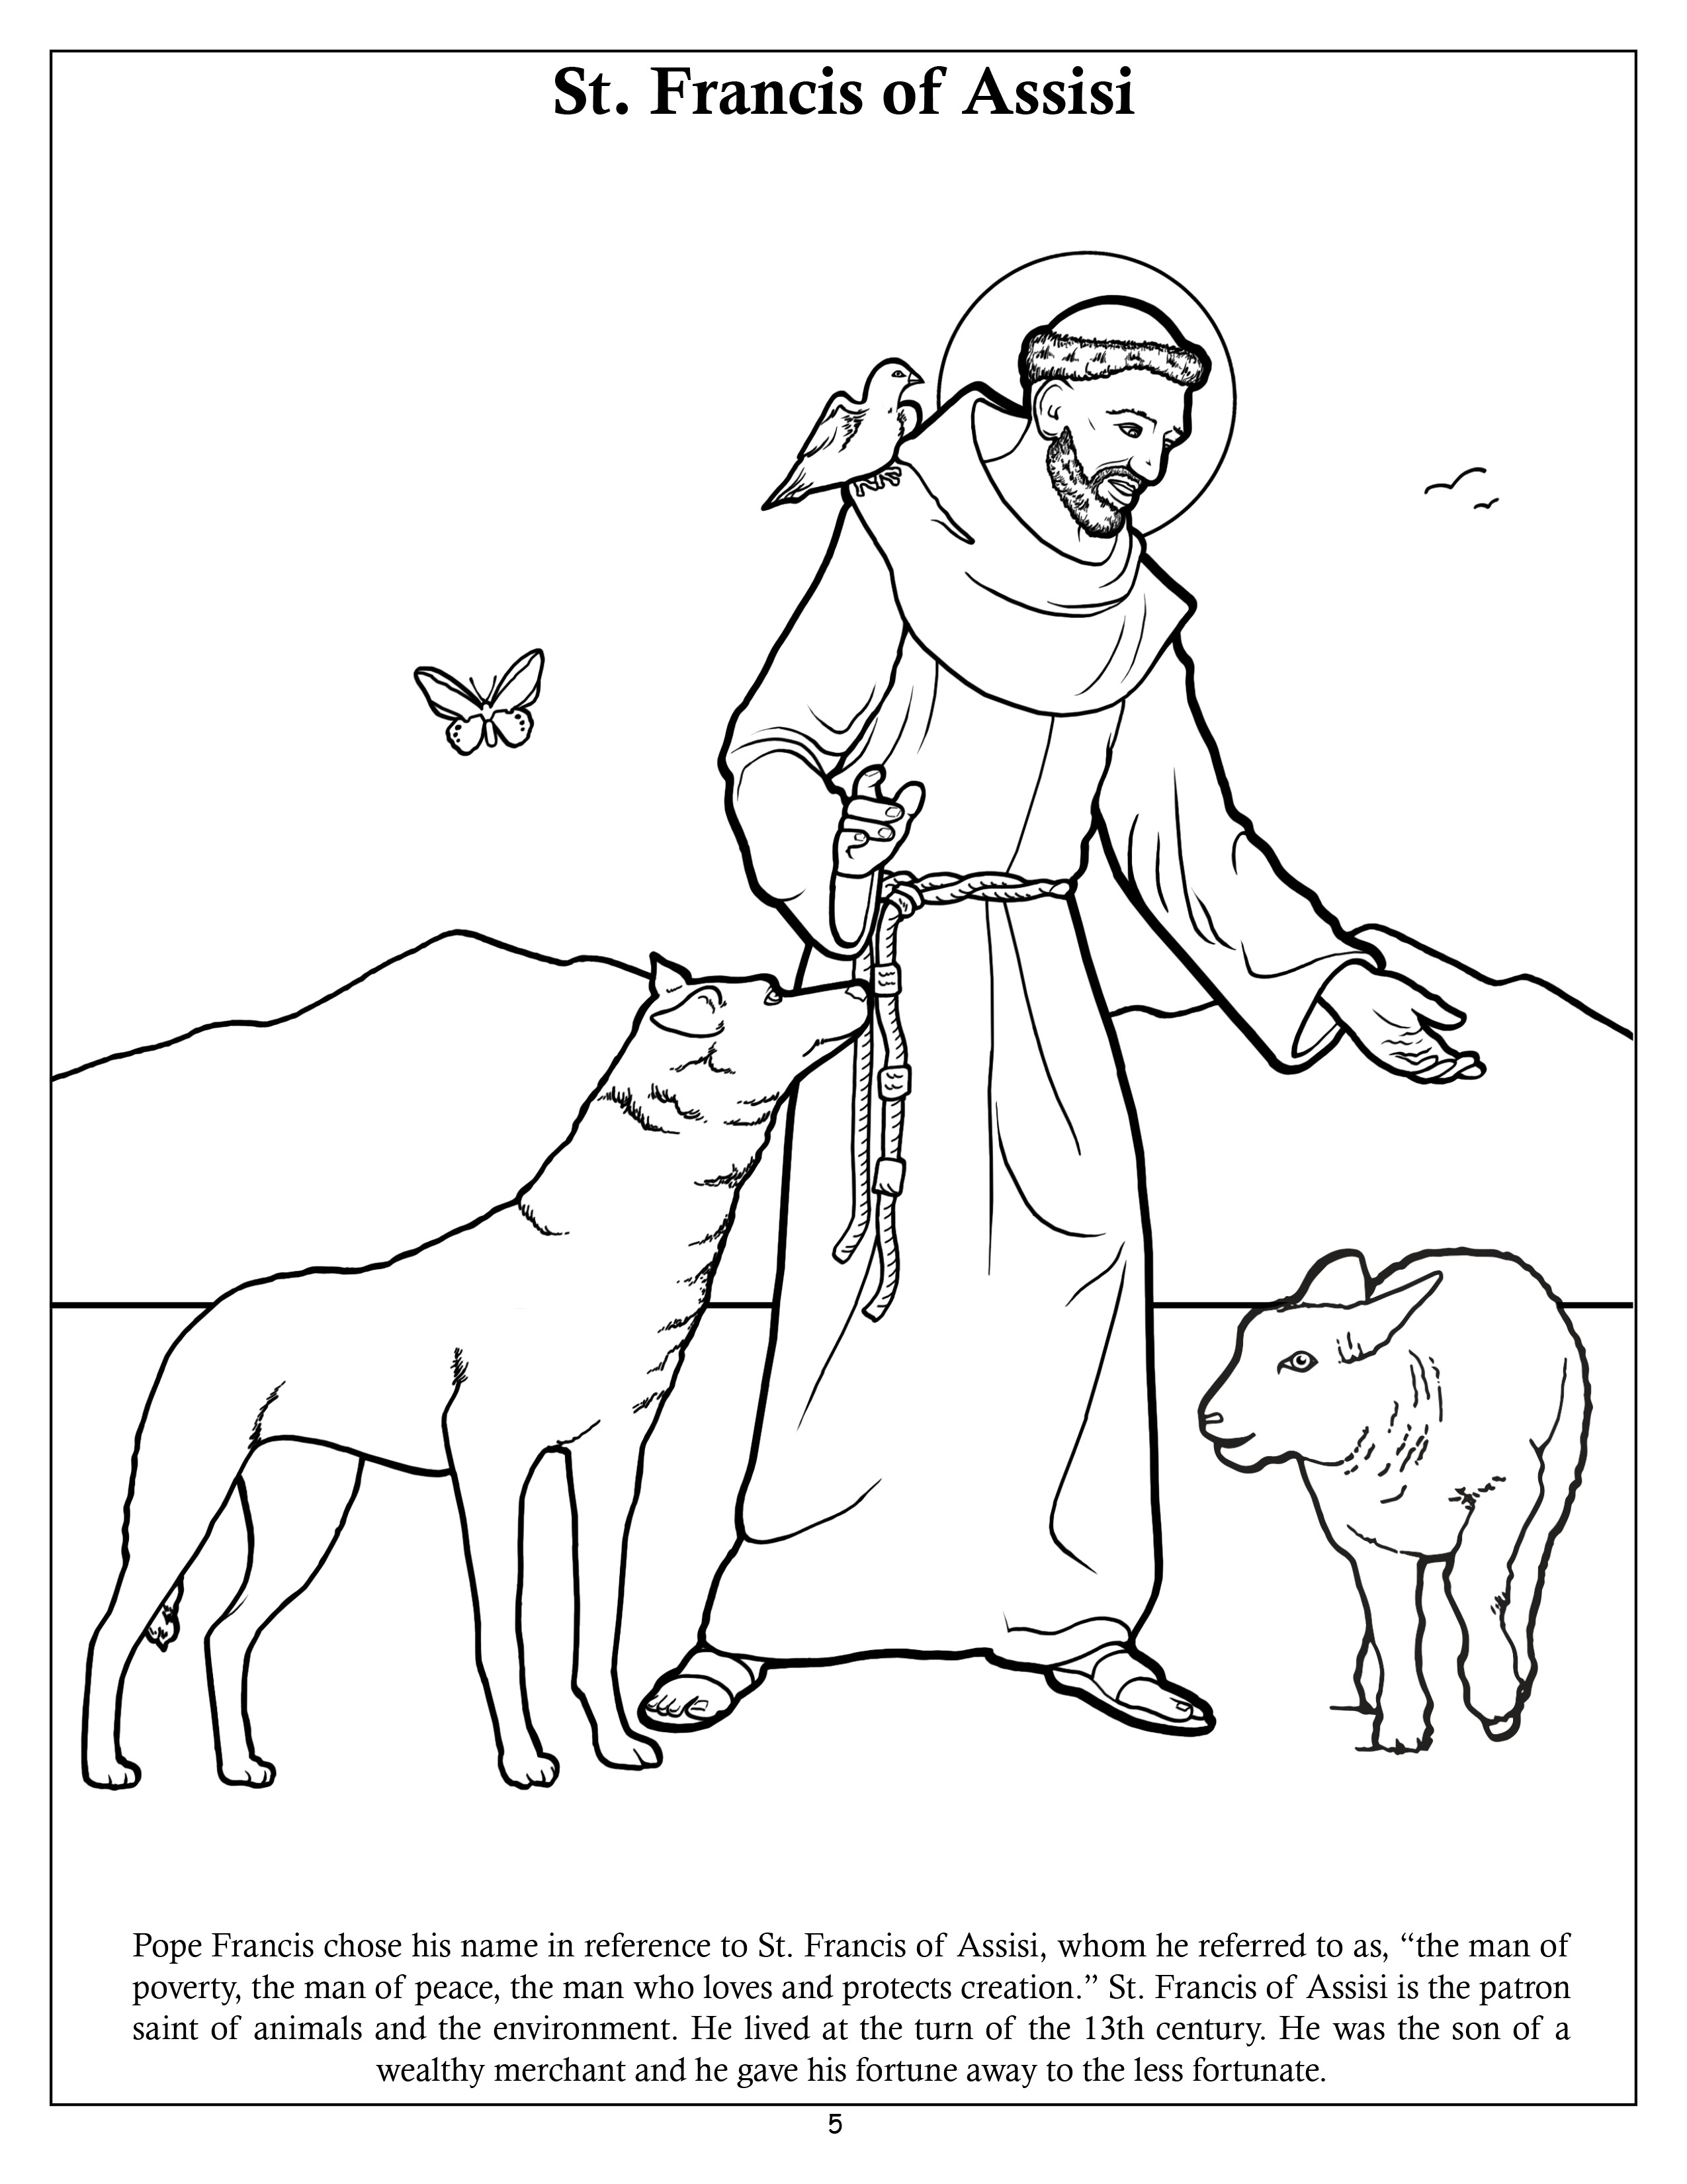 st francis of assisi coloring pages all saints coloring page sketch coloring page coloring of francis assisi pages st